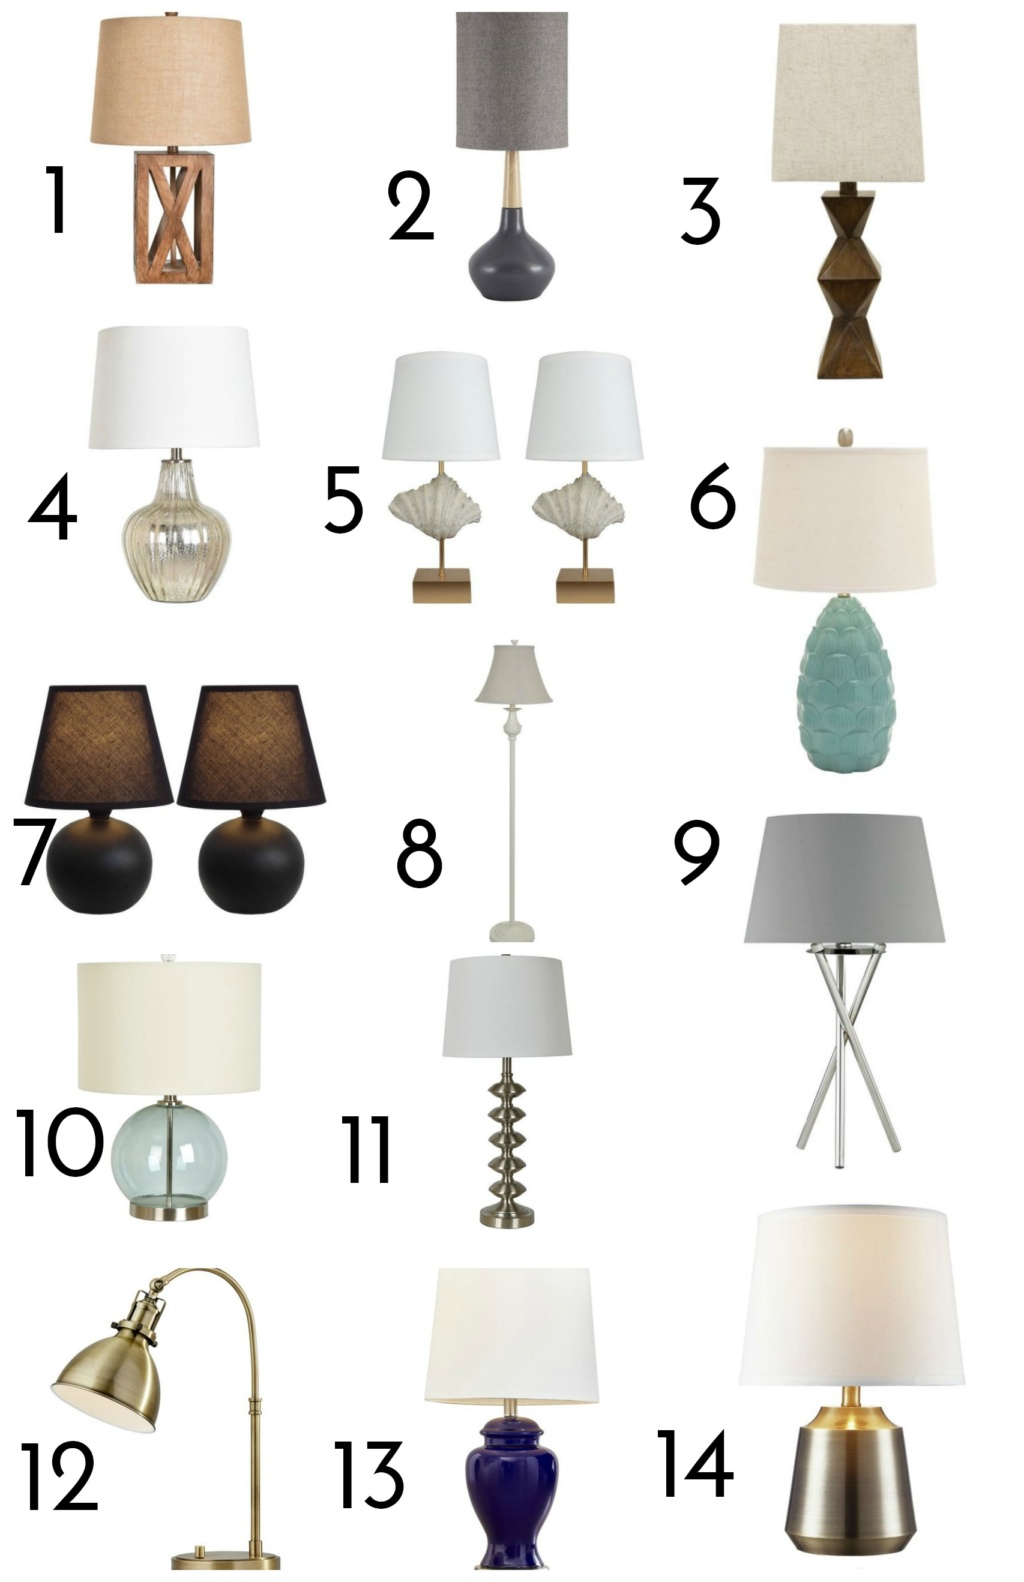 Where to buy lamps that are gorgeous and affordable 1 camilla table lamps 4999 2 admiral cove set of 2 8199 3 chambray stacked diamond 4699 4 glass metal 4299 5 shell set aloadofball Images